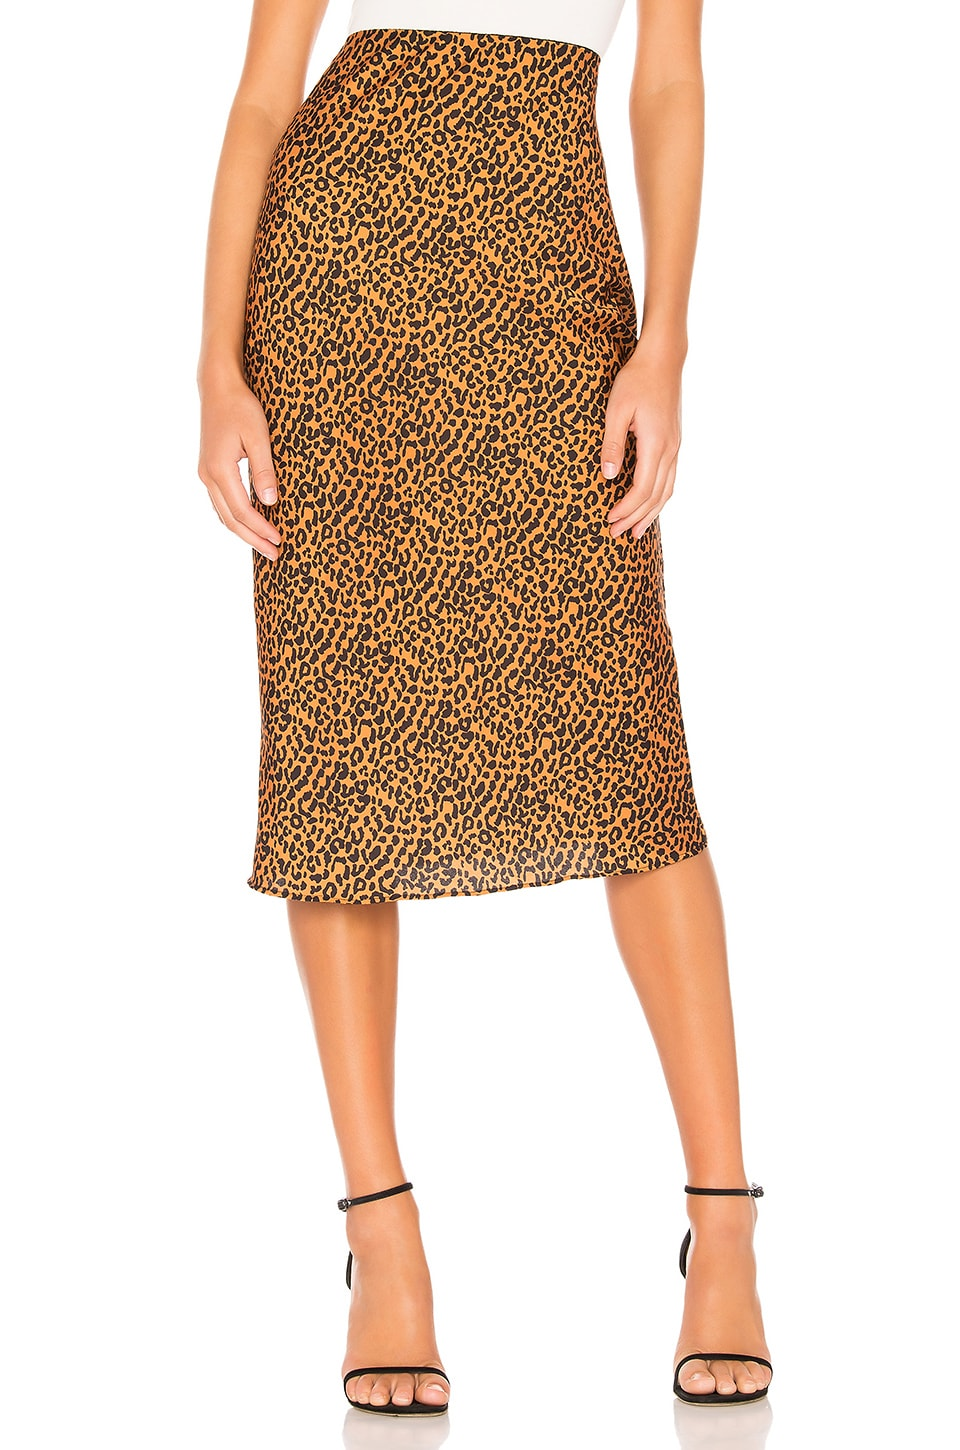 The East Order Sahara Midi Skirt in Safari